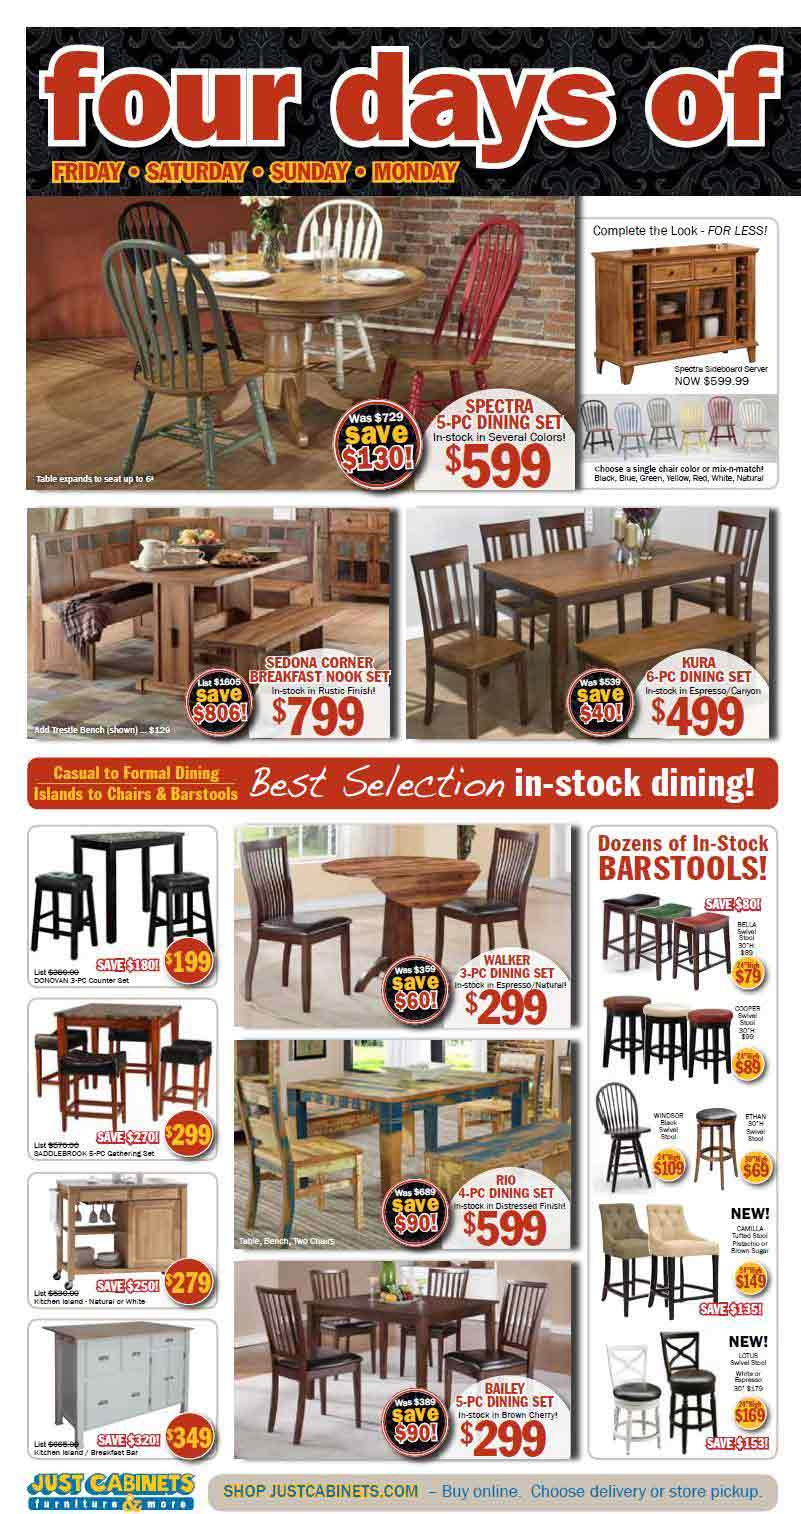 Just Cabinets Furniture Black Friday 2013 Ad Find The